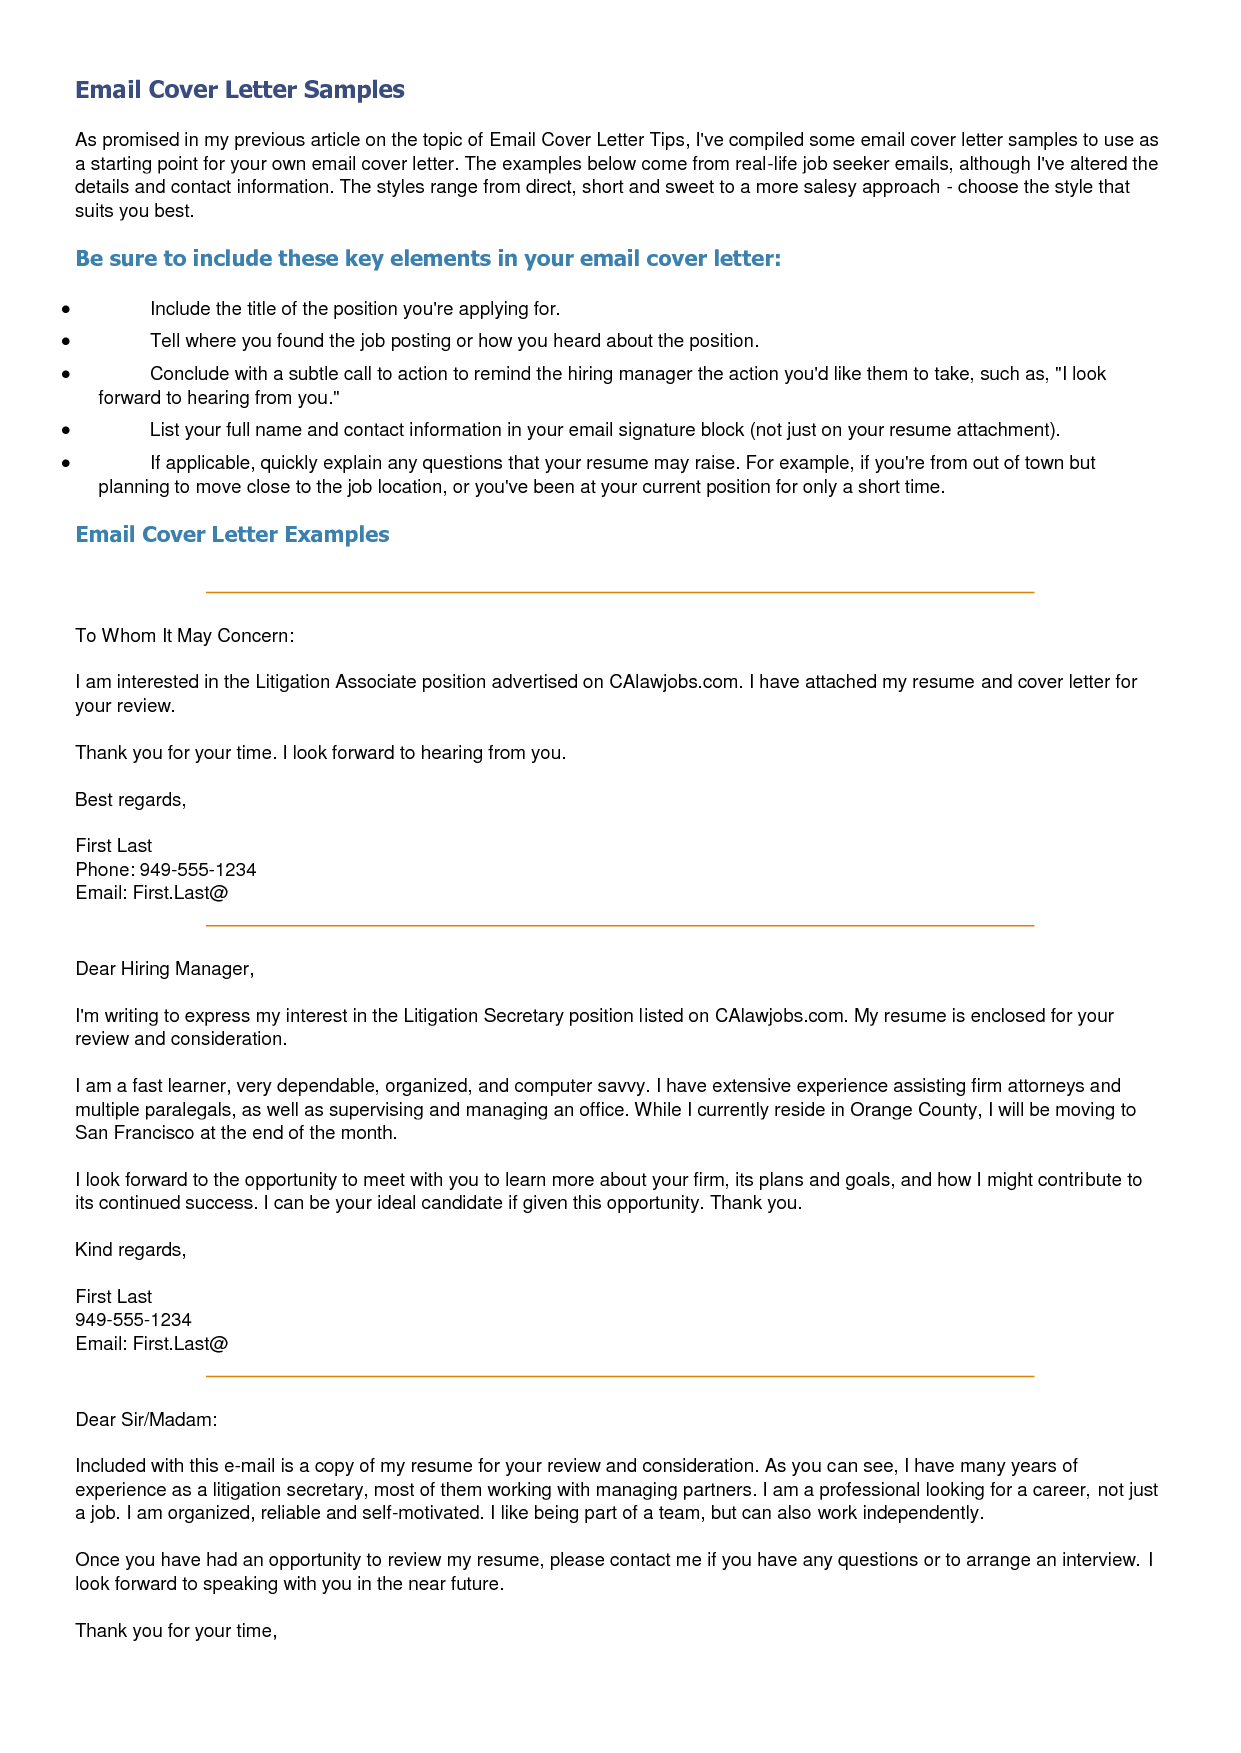 Ra Resume 12 Tips For Better Email Cover Letters